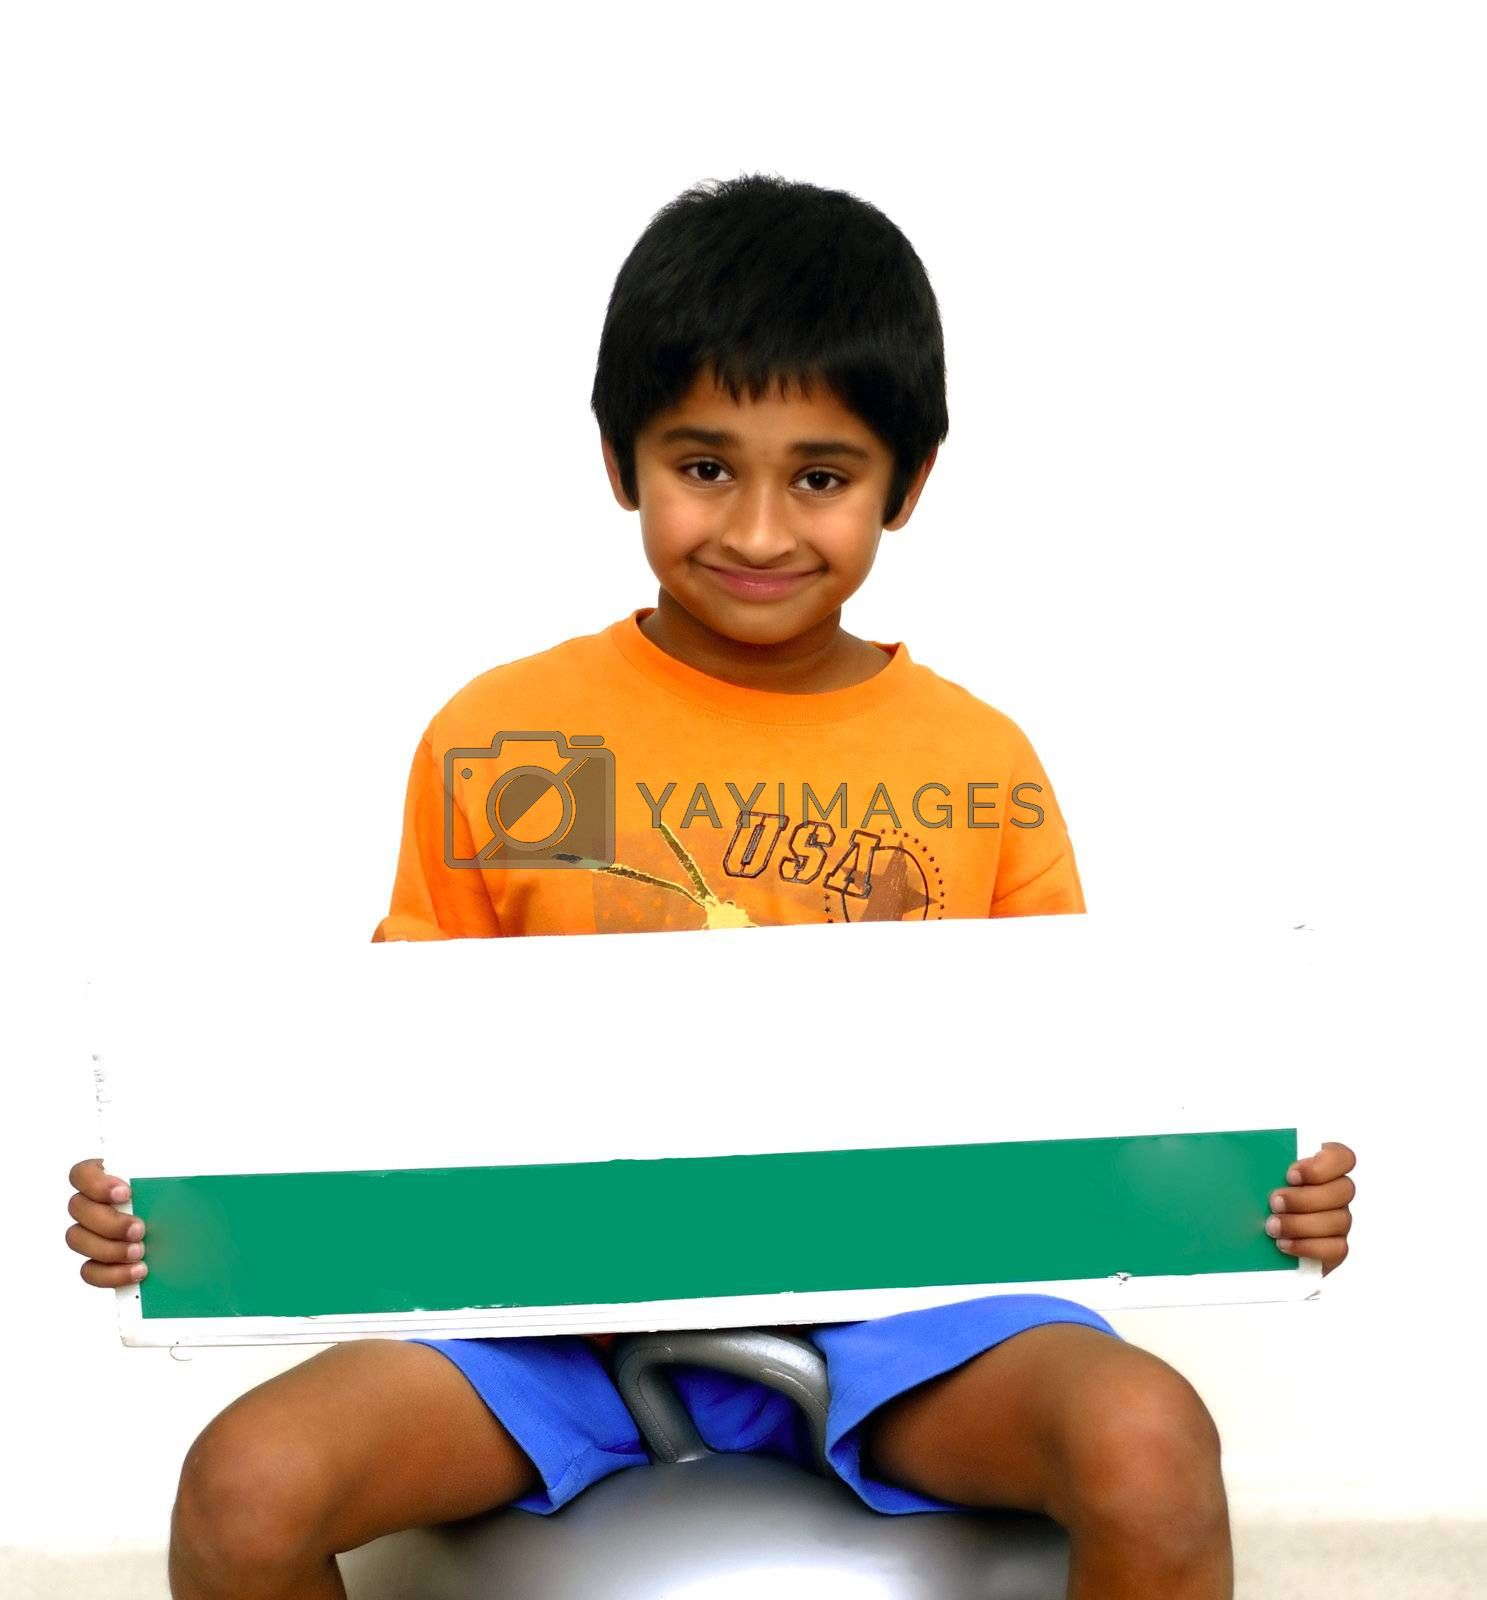 An handsome Indian kid holding a sign board